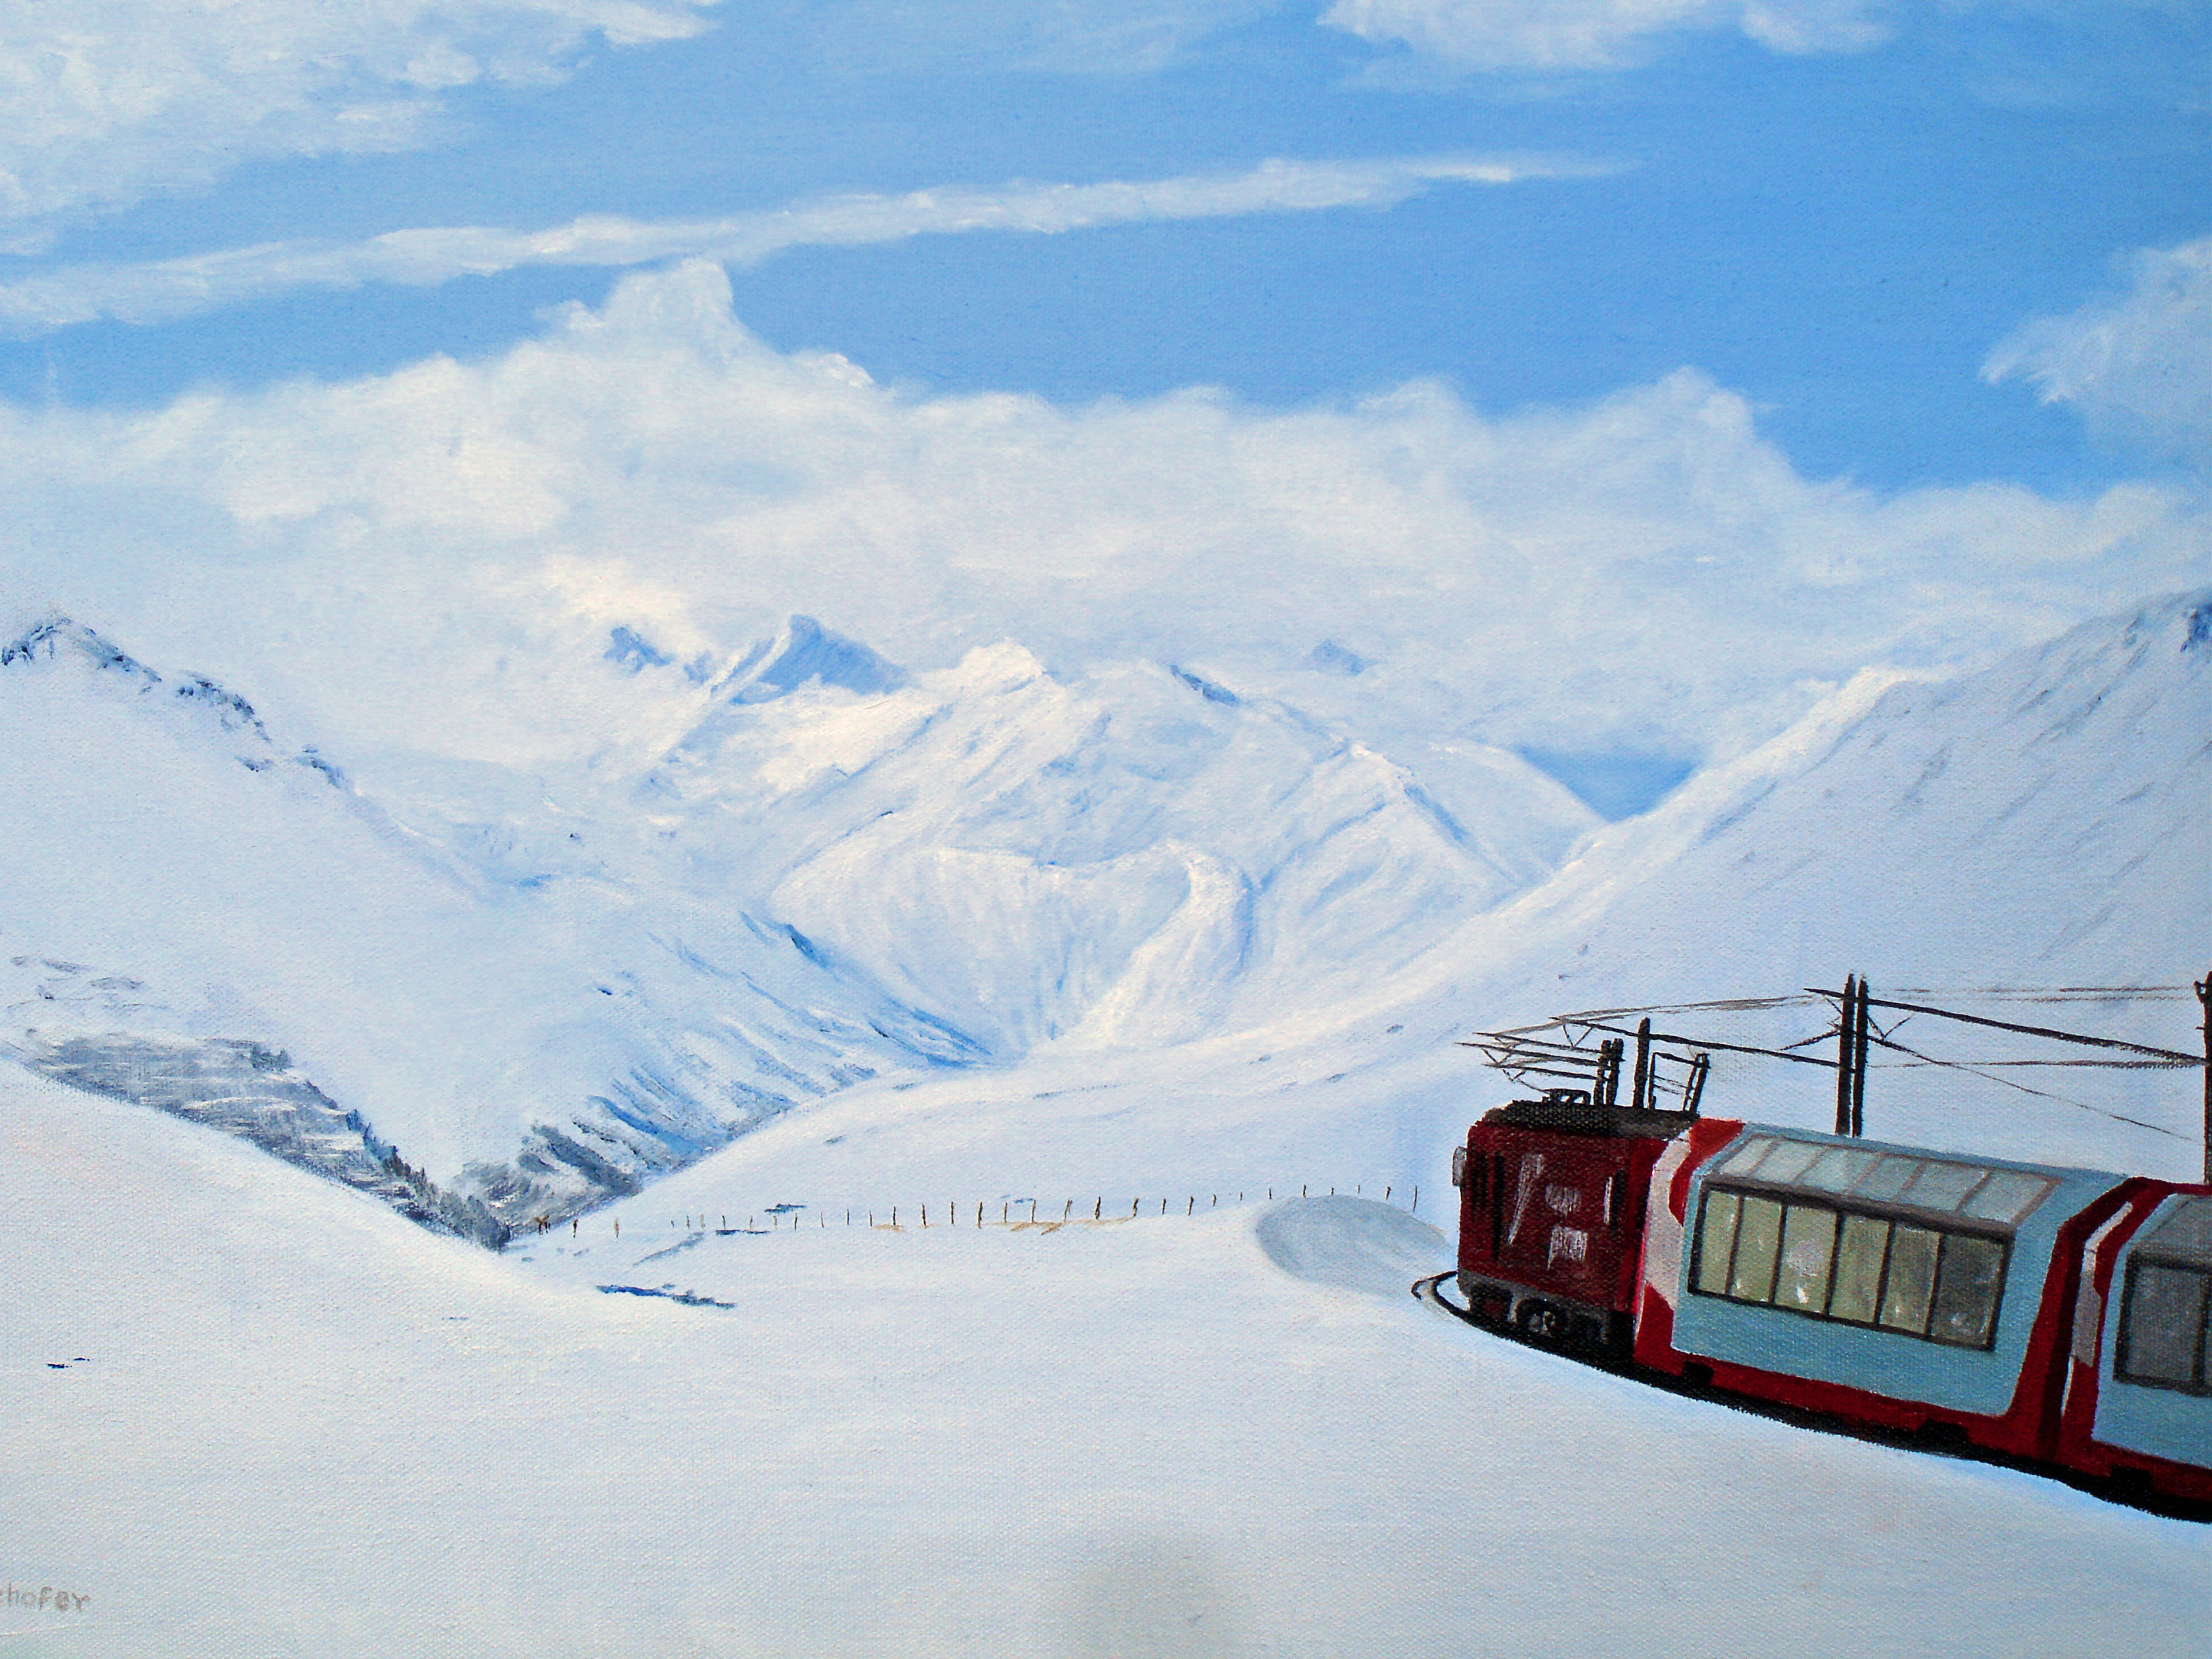 Glacier Express to Zermatt